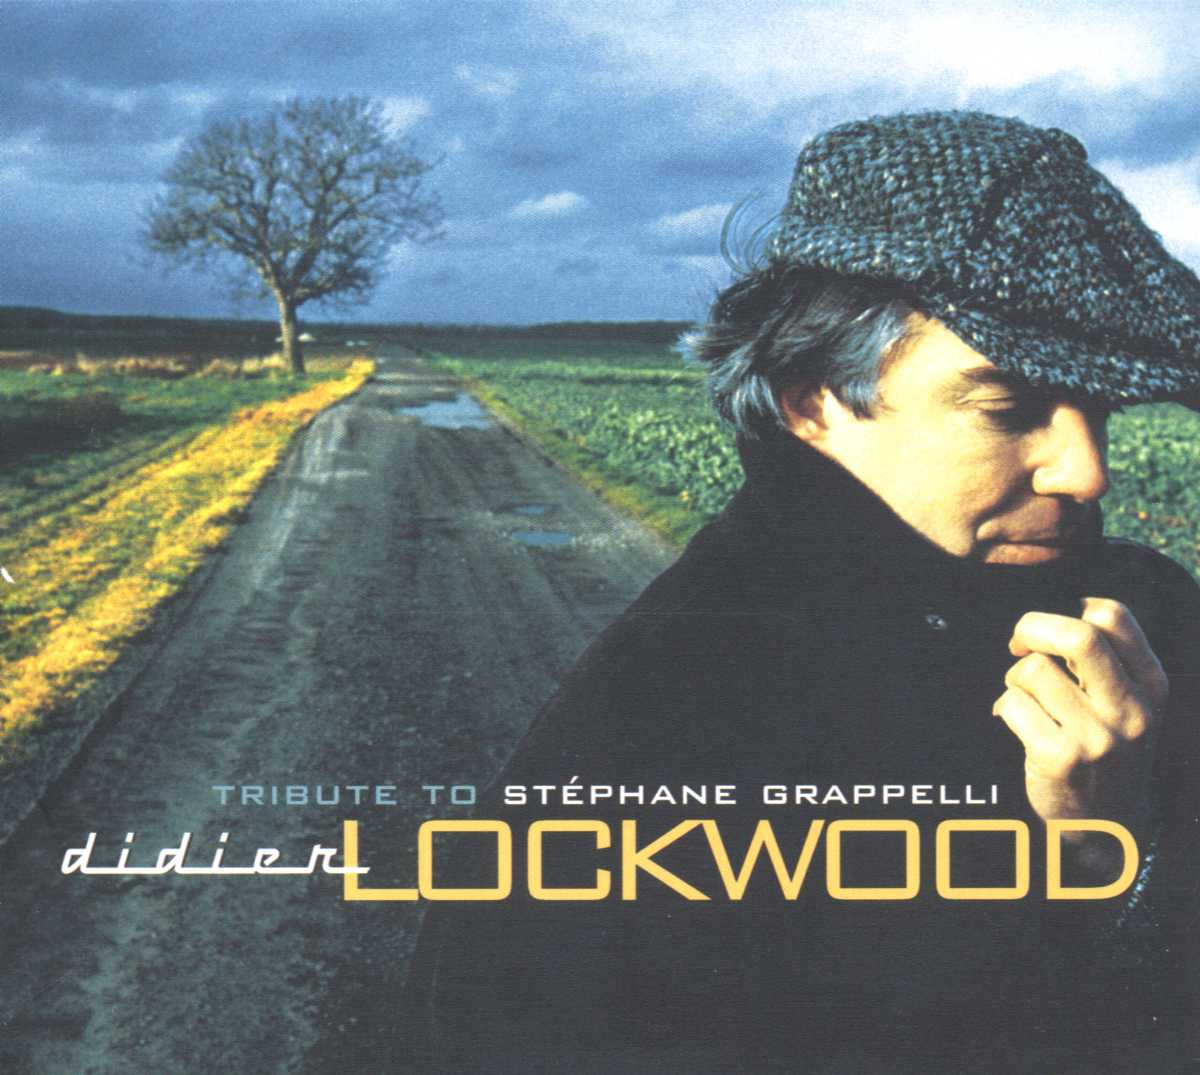 Didier-Lockwood-Tribute-to-Stephane-Grappelli